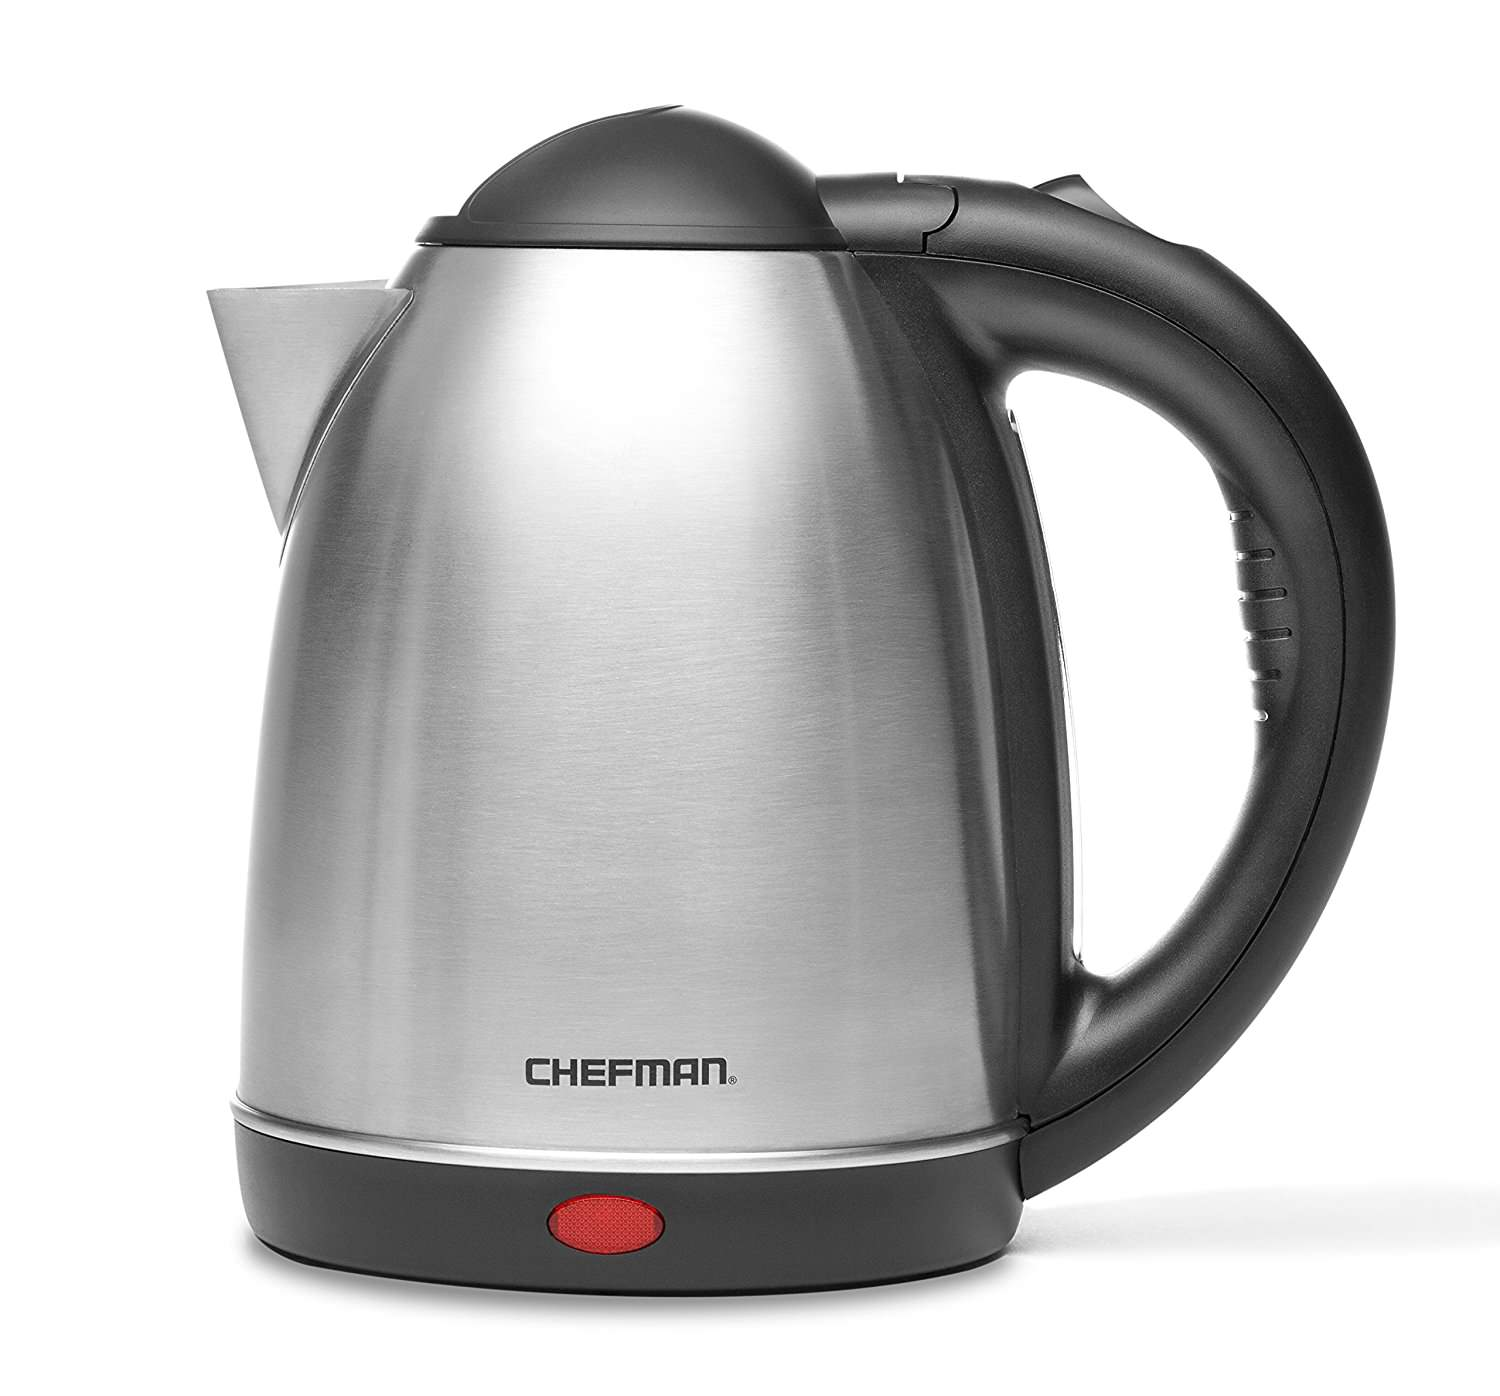 Chefman RJ11-17 1.7 Liter/1.8 Quart High Grade Stainless Steel 360 Degree Rotating Rapid Boil Cordless Electric Kettle with Boil Dry Protection and Easy-check Water View Window